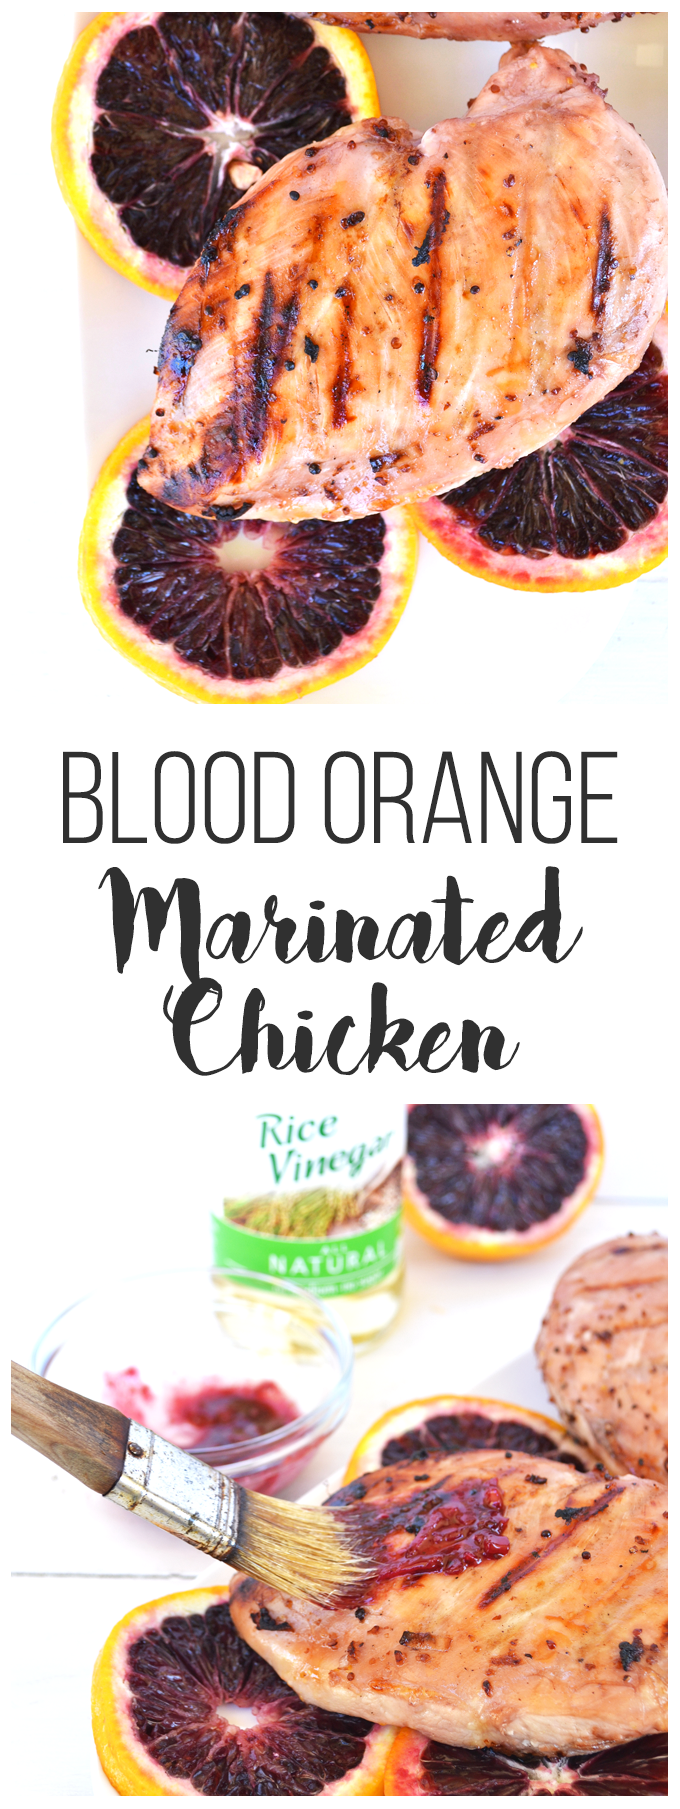 Blood Orange Marinated Chicken - perfect for grilling season! This quick marinade also becomes a sauce for after the chicken is cooked. Paleo, Whole 30 and so delicious!